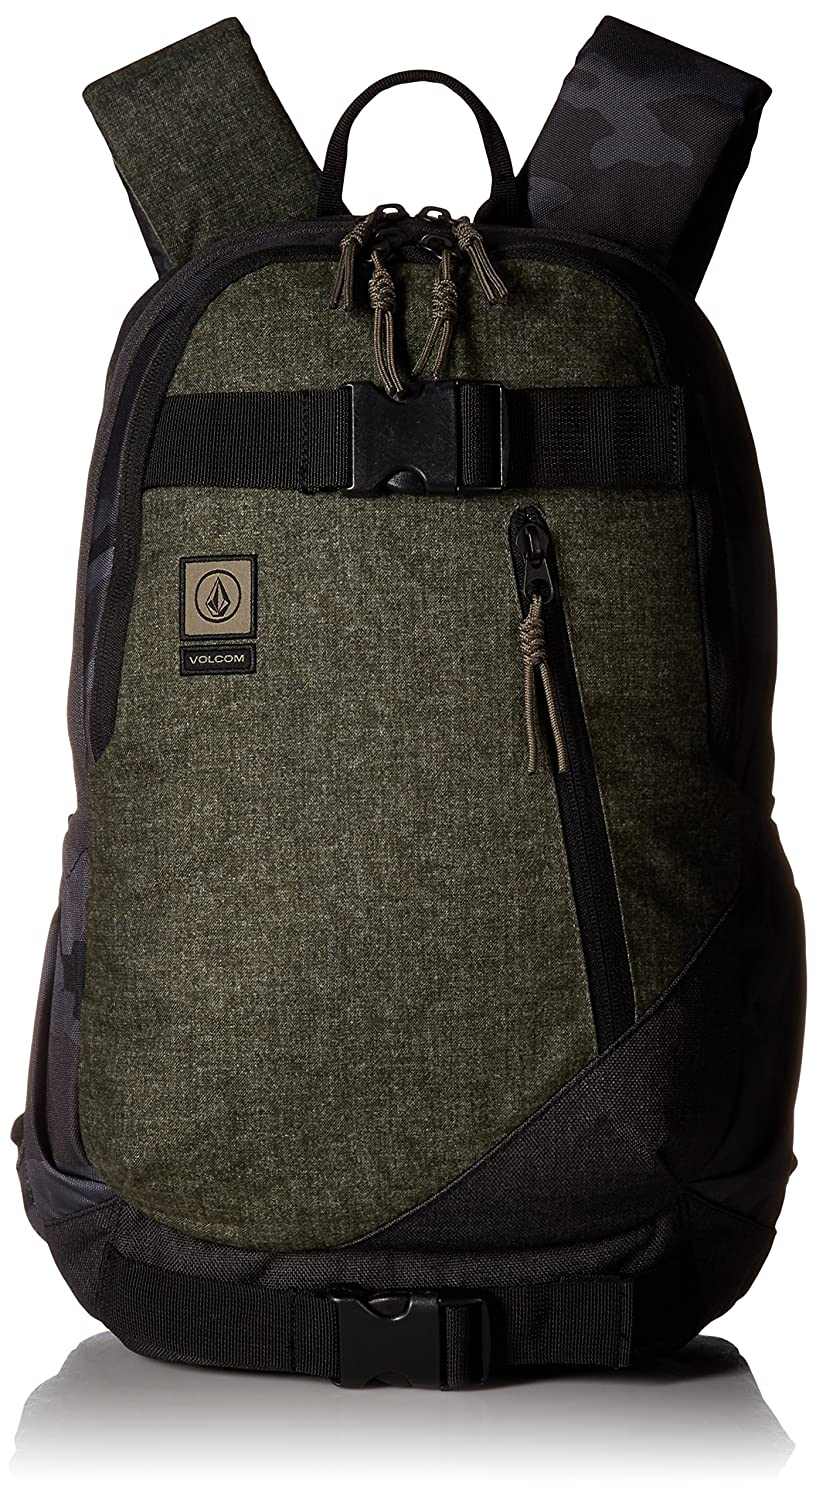 Volcom Unisex Substrate Backpack Black/Grey One Size Fits All D6531649